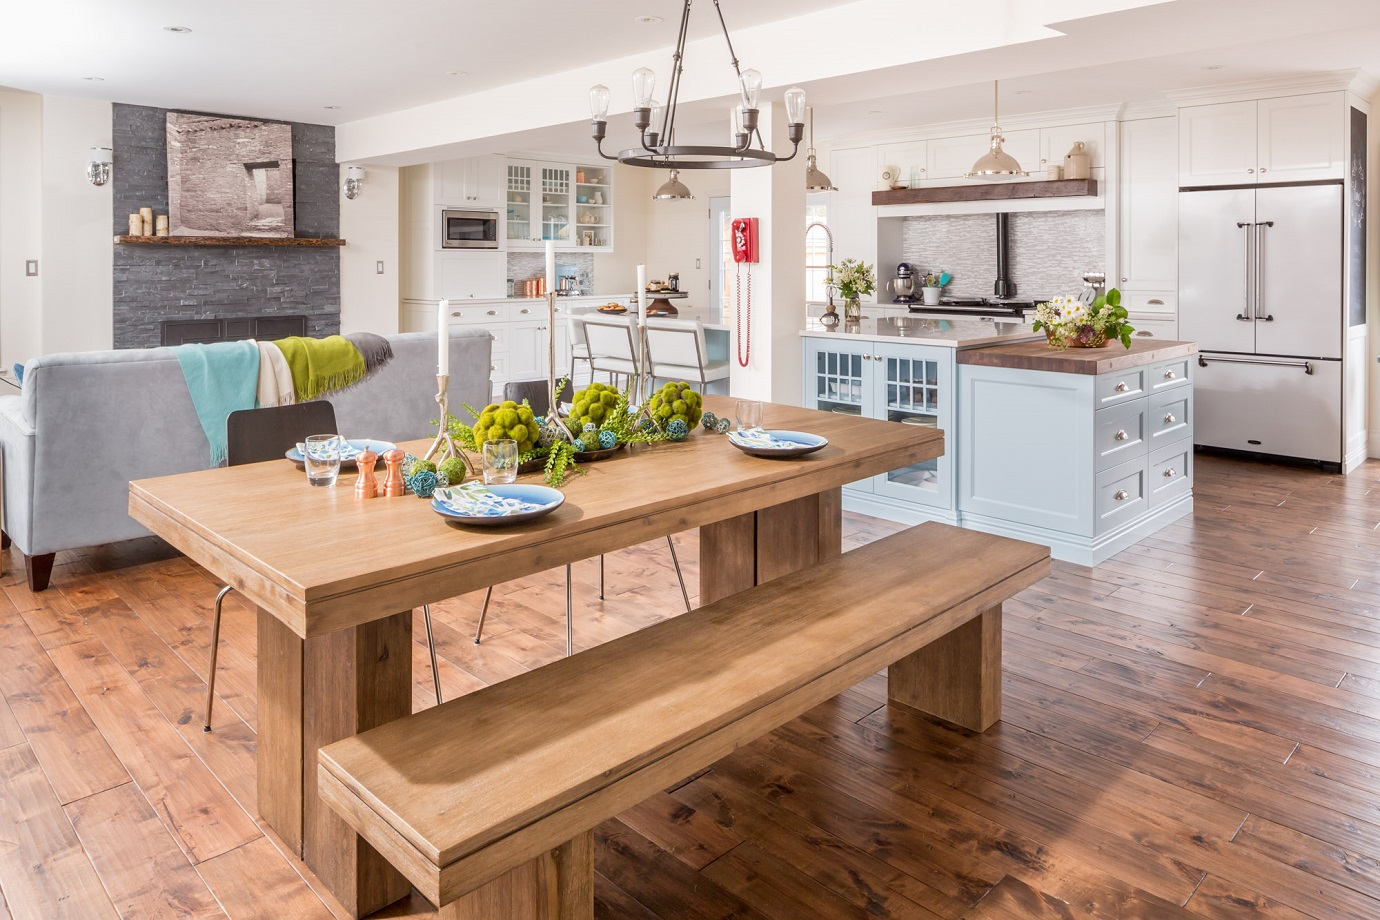 Best of houzz 2015 awards news paragon kitchens for Houzz small kitchens